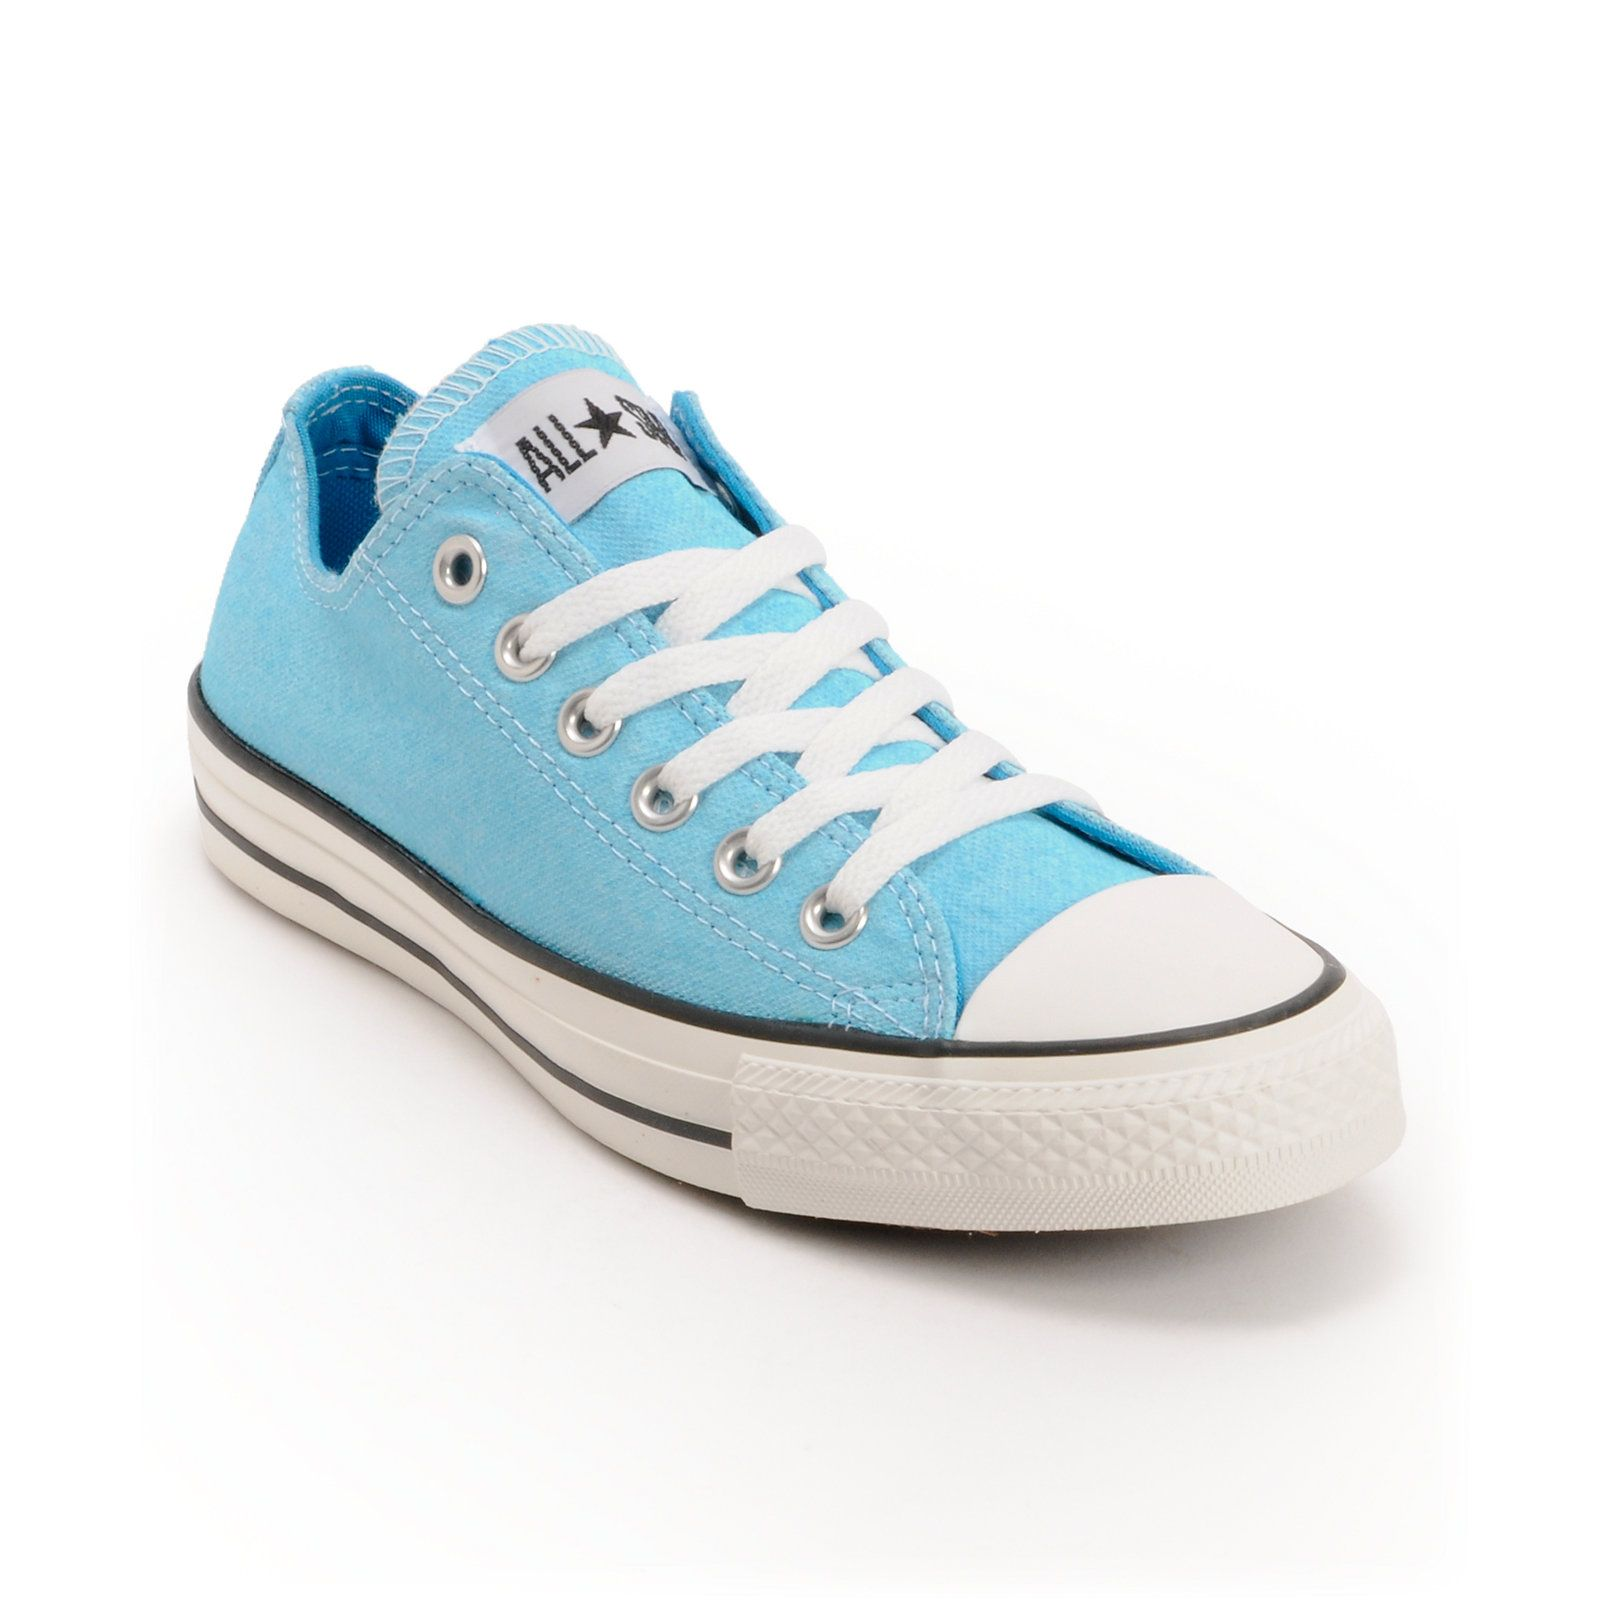 Converse Chuck Taylor All Star Washed Neon Blue Shoe at